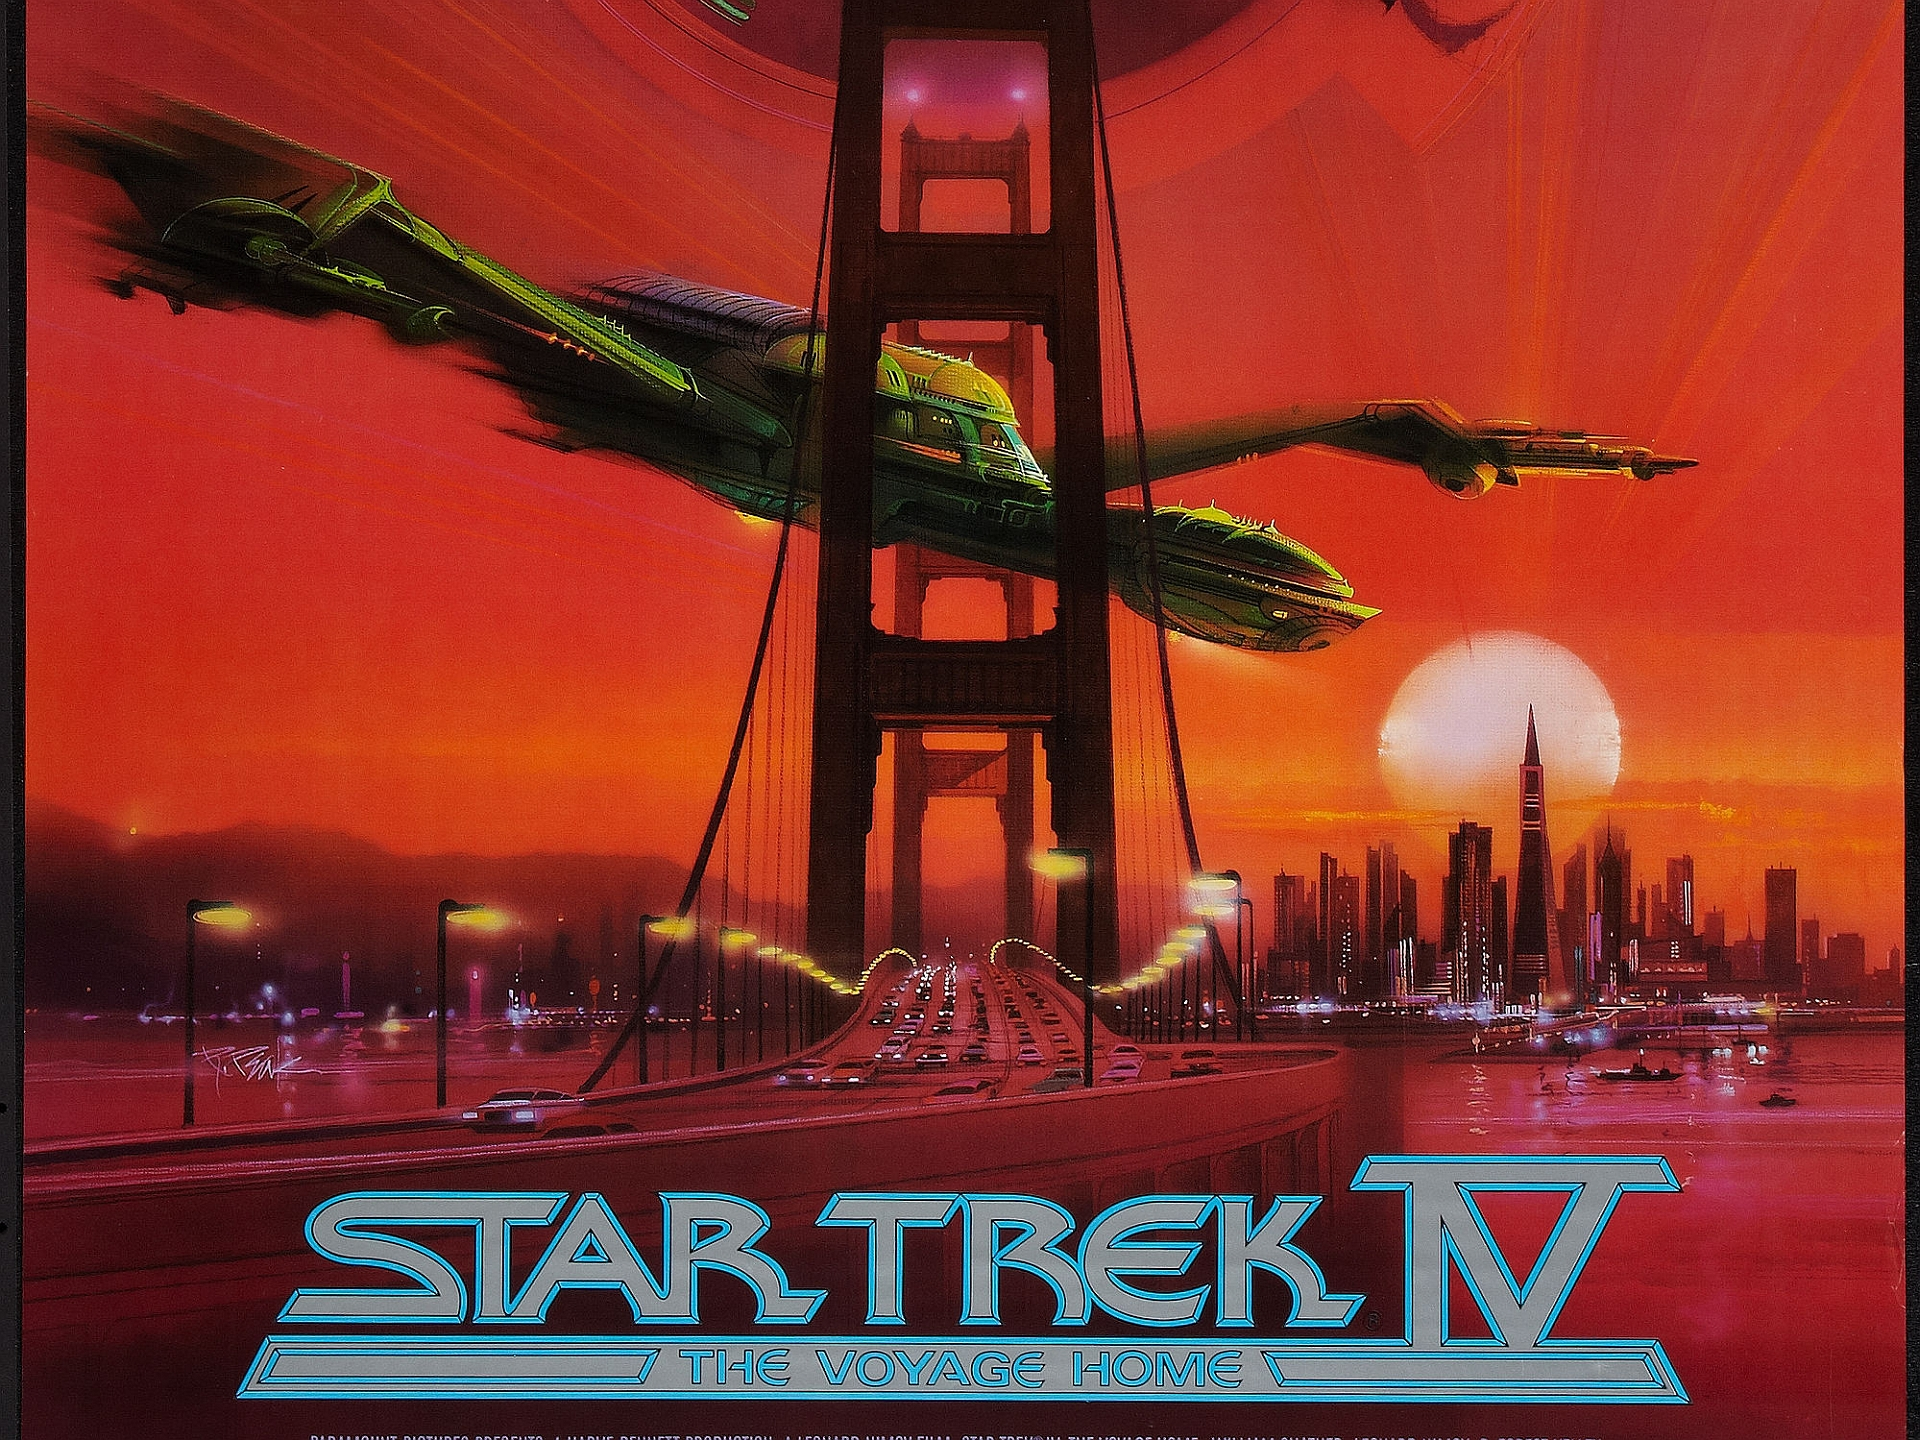 12 star trek iv the voyage home hd wallpapers for Wallpaper hd home movie